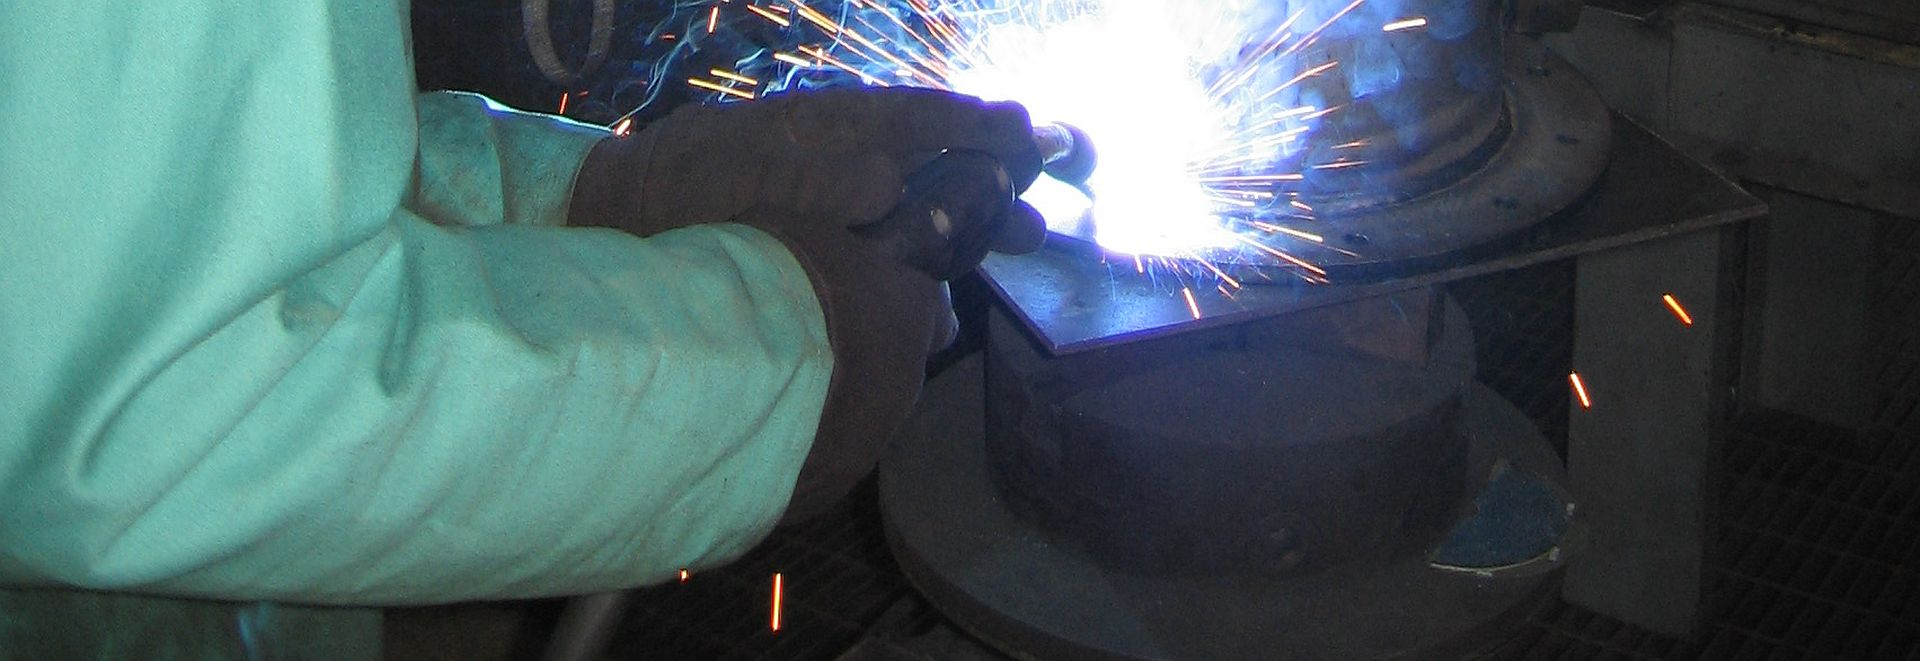 Hays Fabricating welding image